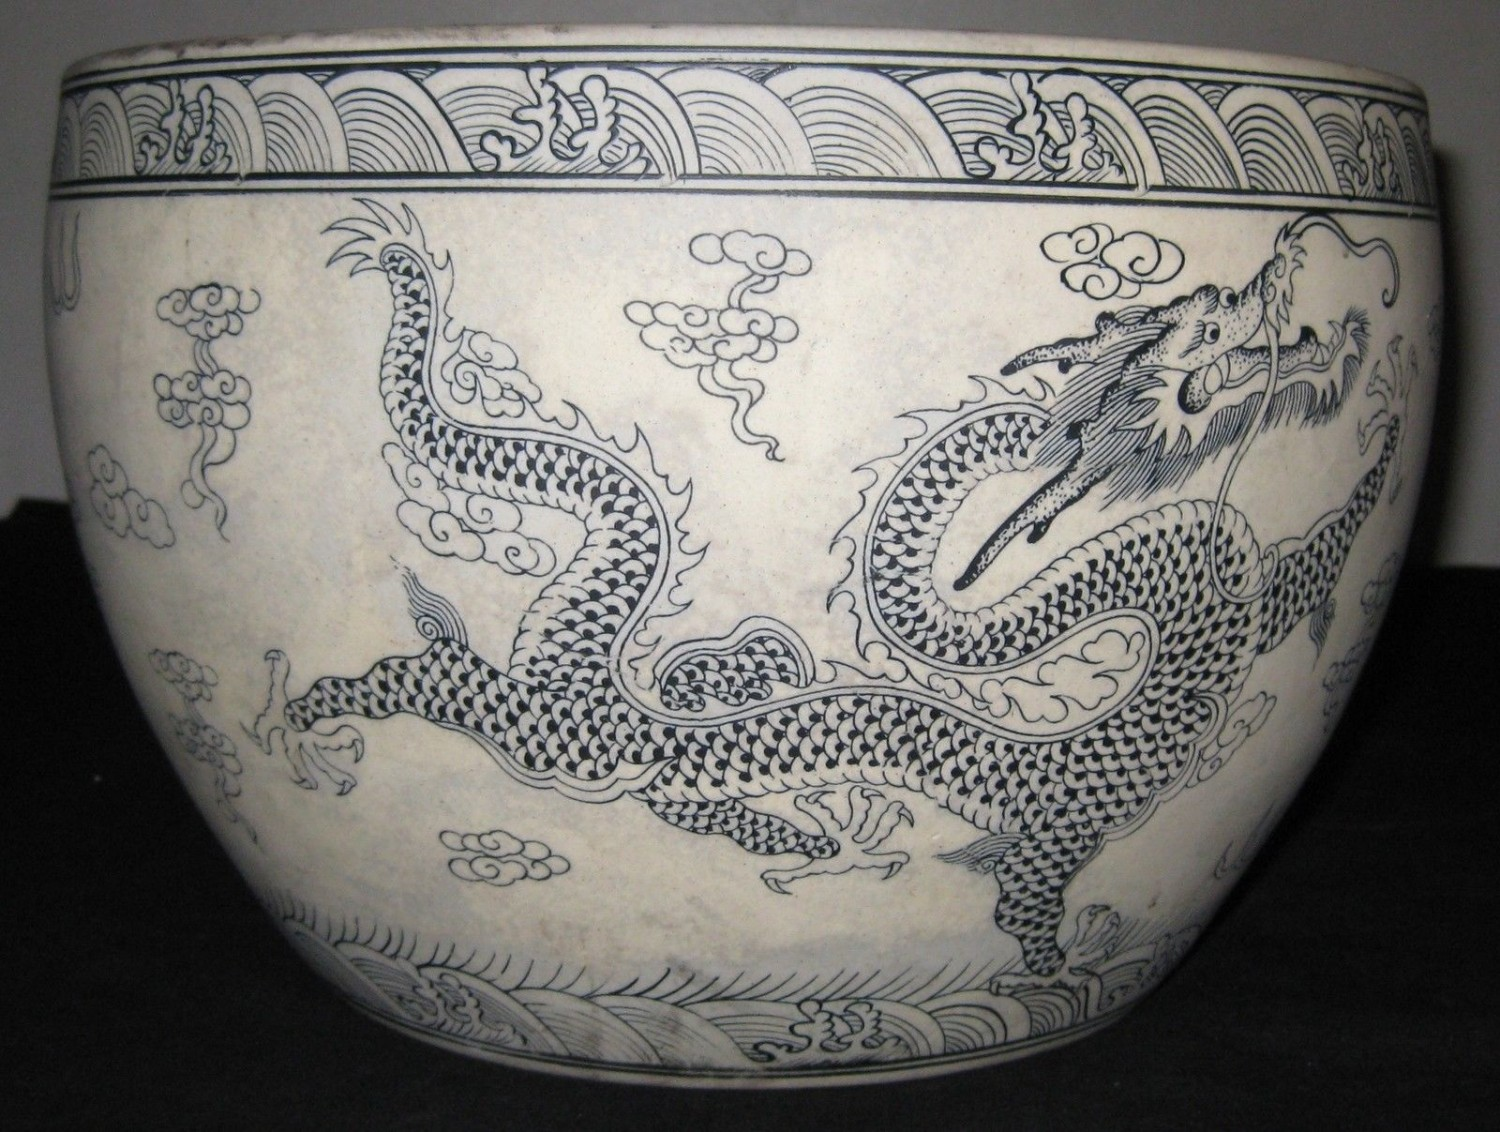 CHINESE PORCELAIN 6 DRAGONS 5 CLAWS B&W FISH BOWL,YONGZHENG MARK, 19TH CENTURY.